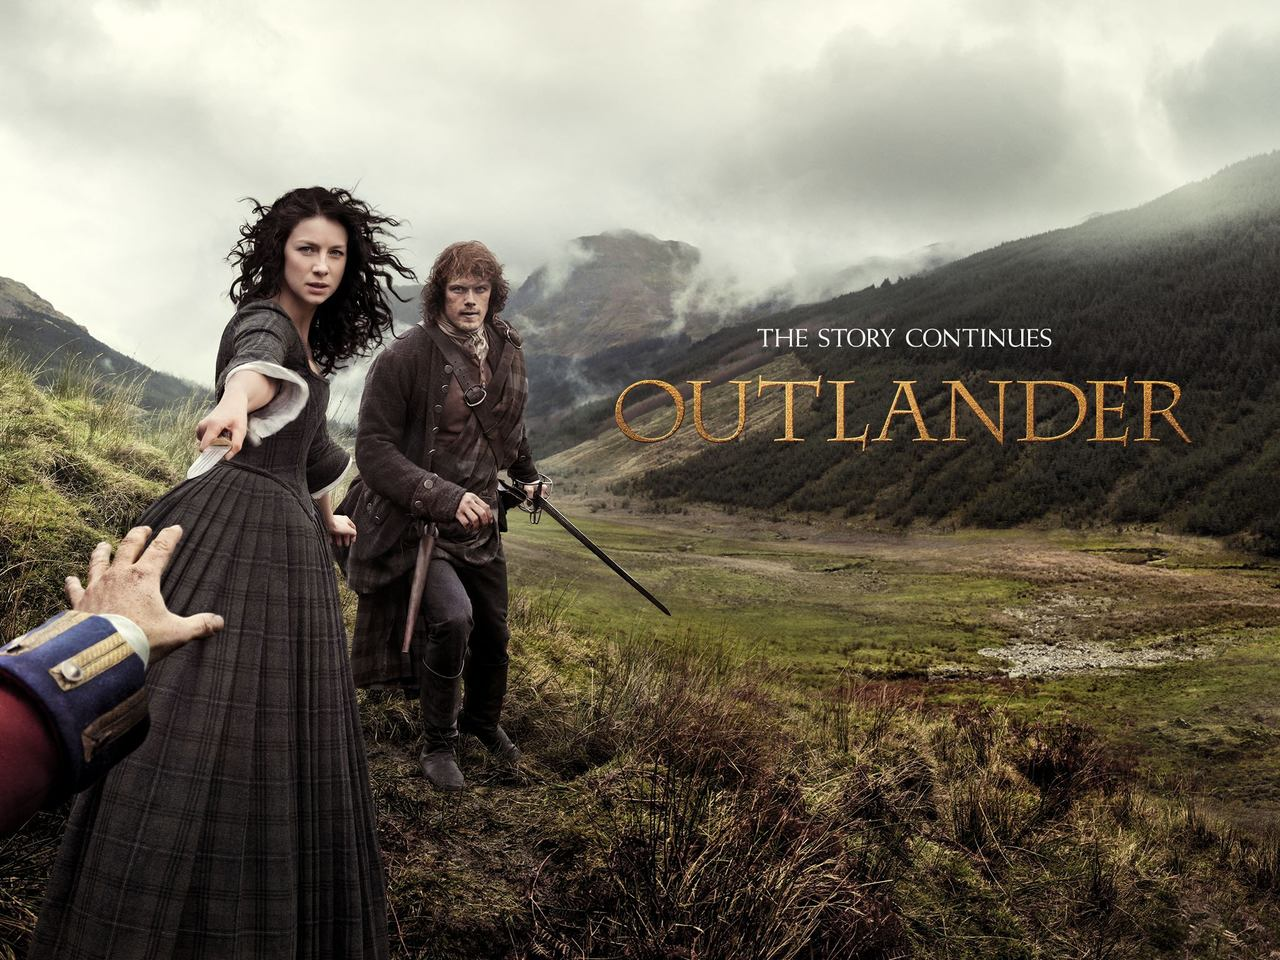 outlander_Easy-Resize.com